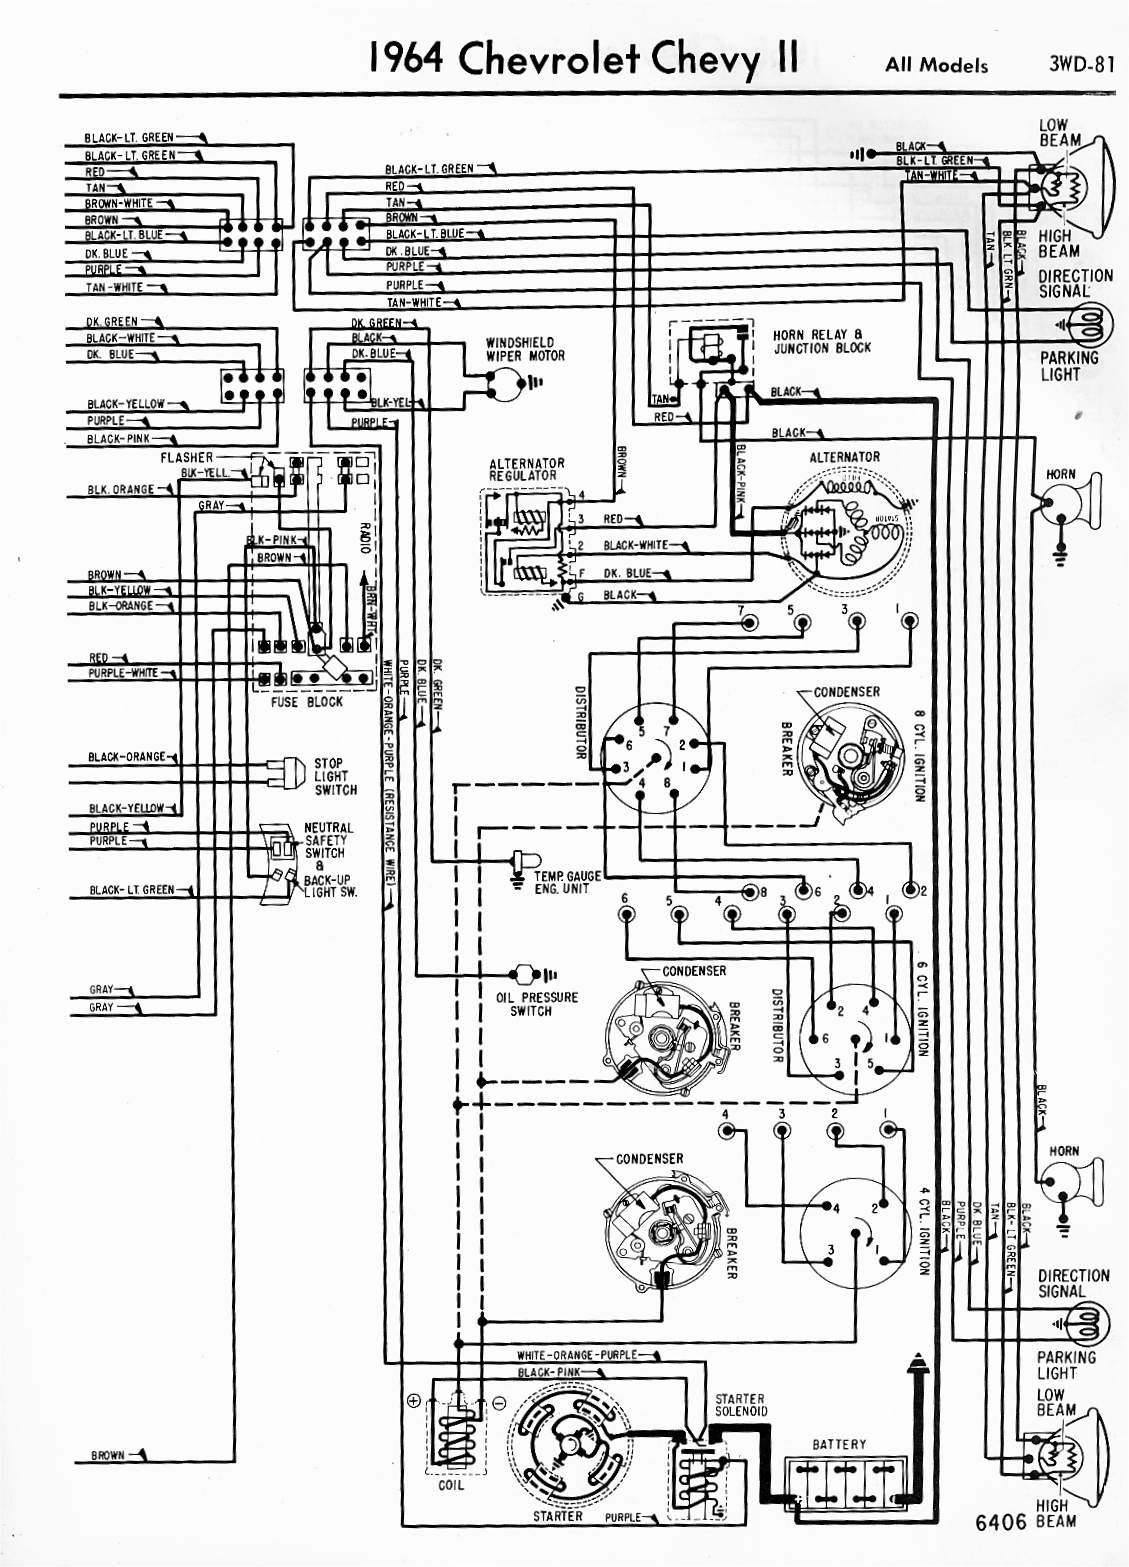 1969 chevy c10 wiring diagram elegant wiring diagram image rh mainetreasurechest com 1969 chevy c10 engine wiring diagram 1969 chevy c10 ignition wiring diagram